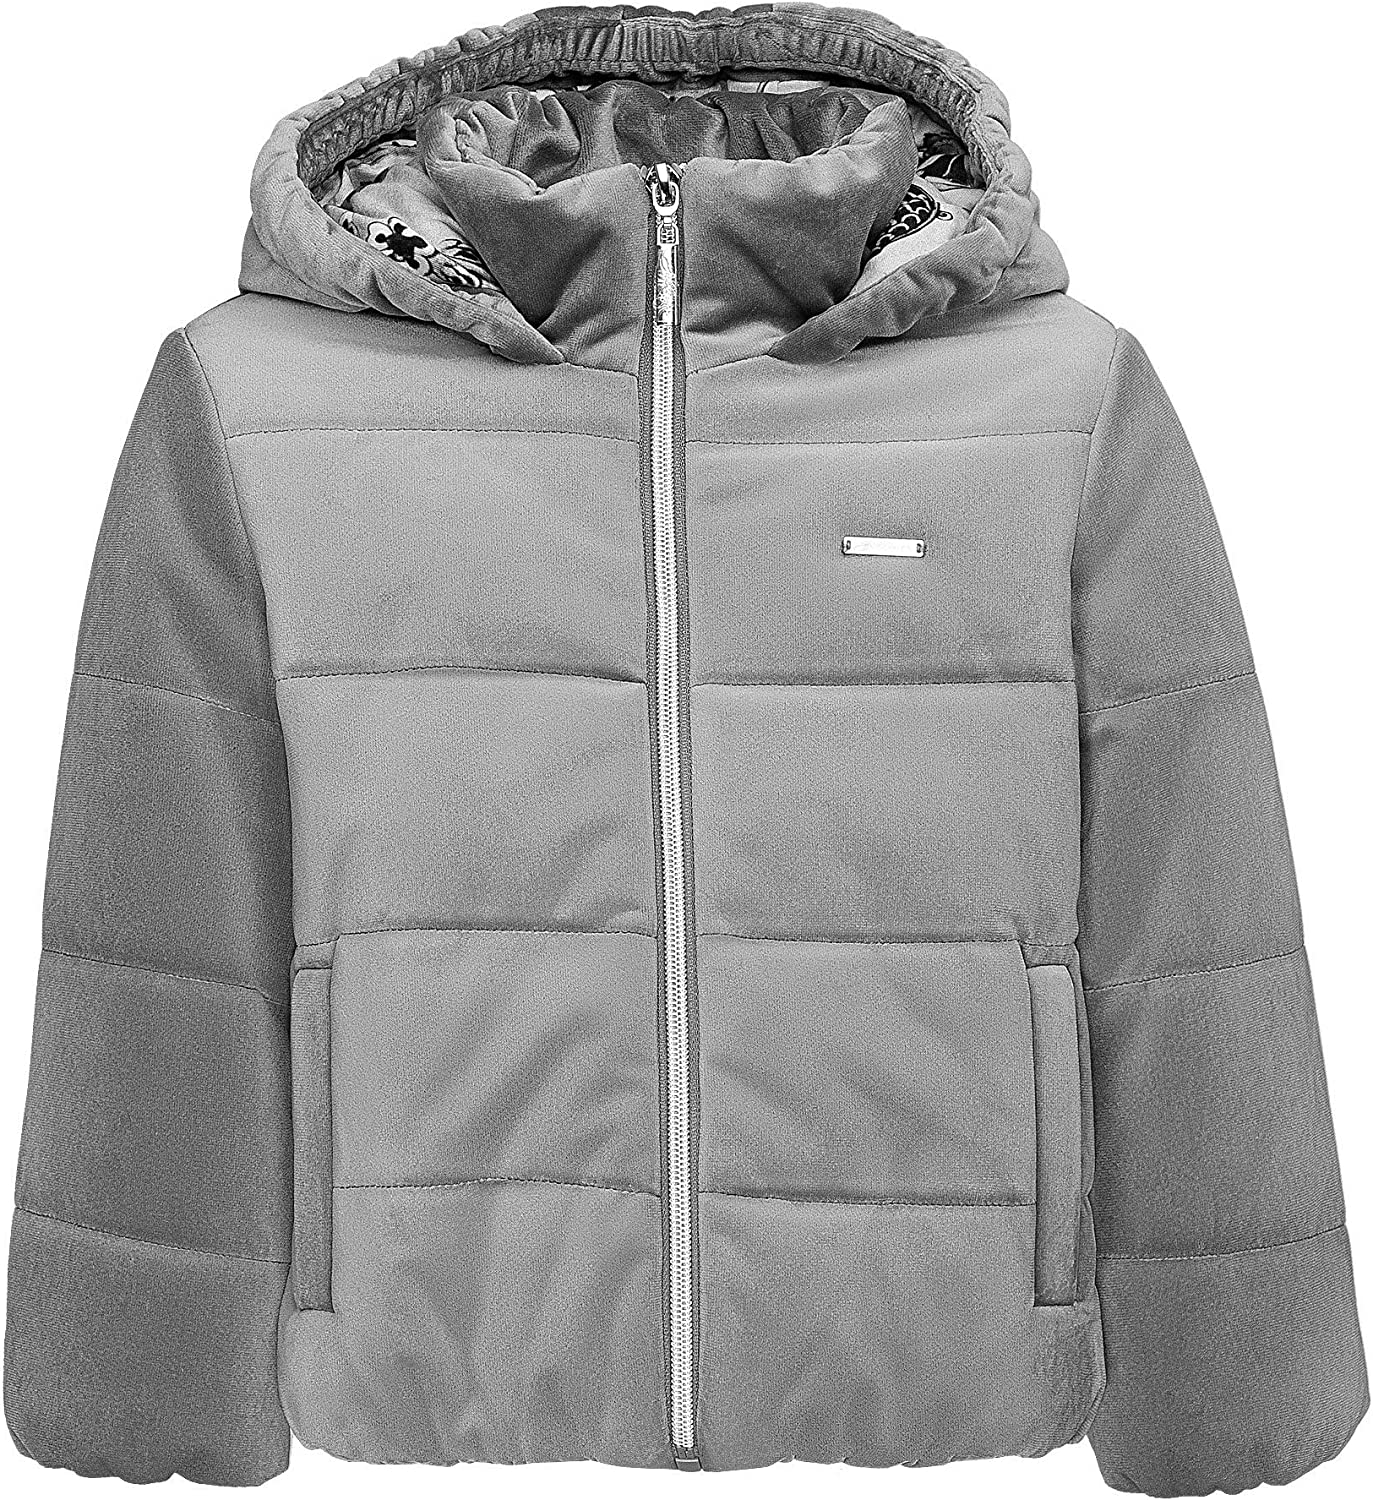 GULLIVER Girls Quilted Coat Demi Season Hooded Jacket Beige Long Waterproof Plain 9-15 Years Kids